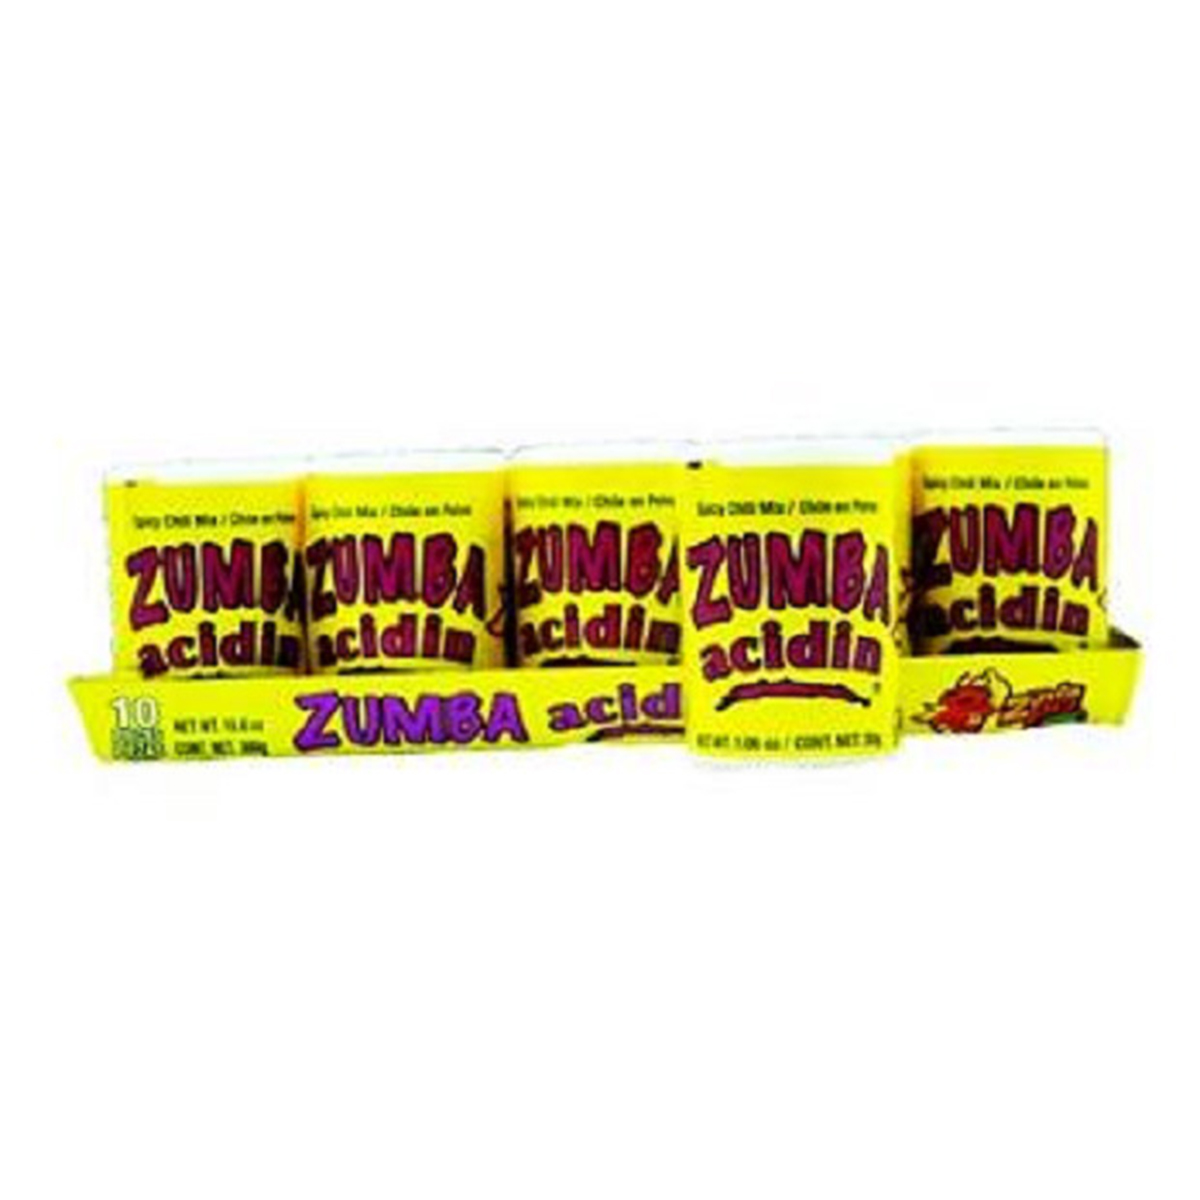 Product Of Zumba Acidin, Spicy Chili Mix, Count 10 Sugar Candy   Grab Varieties & Flavors by